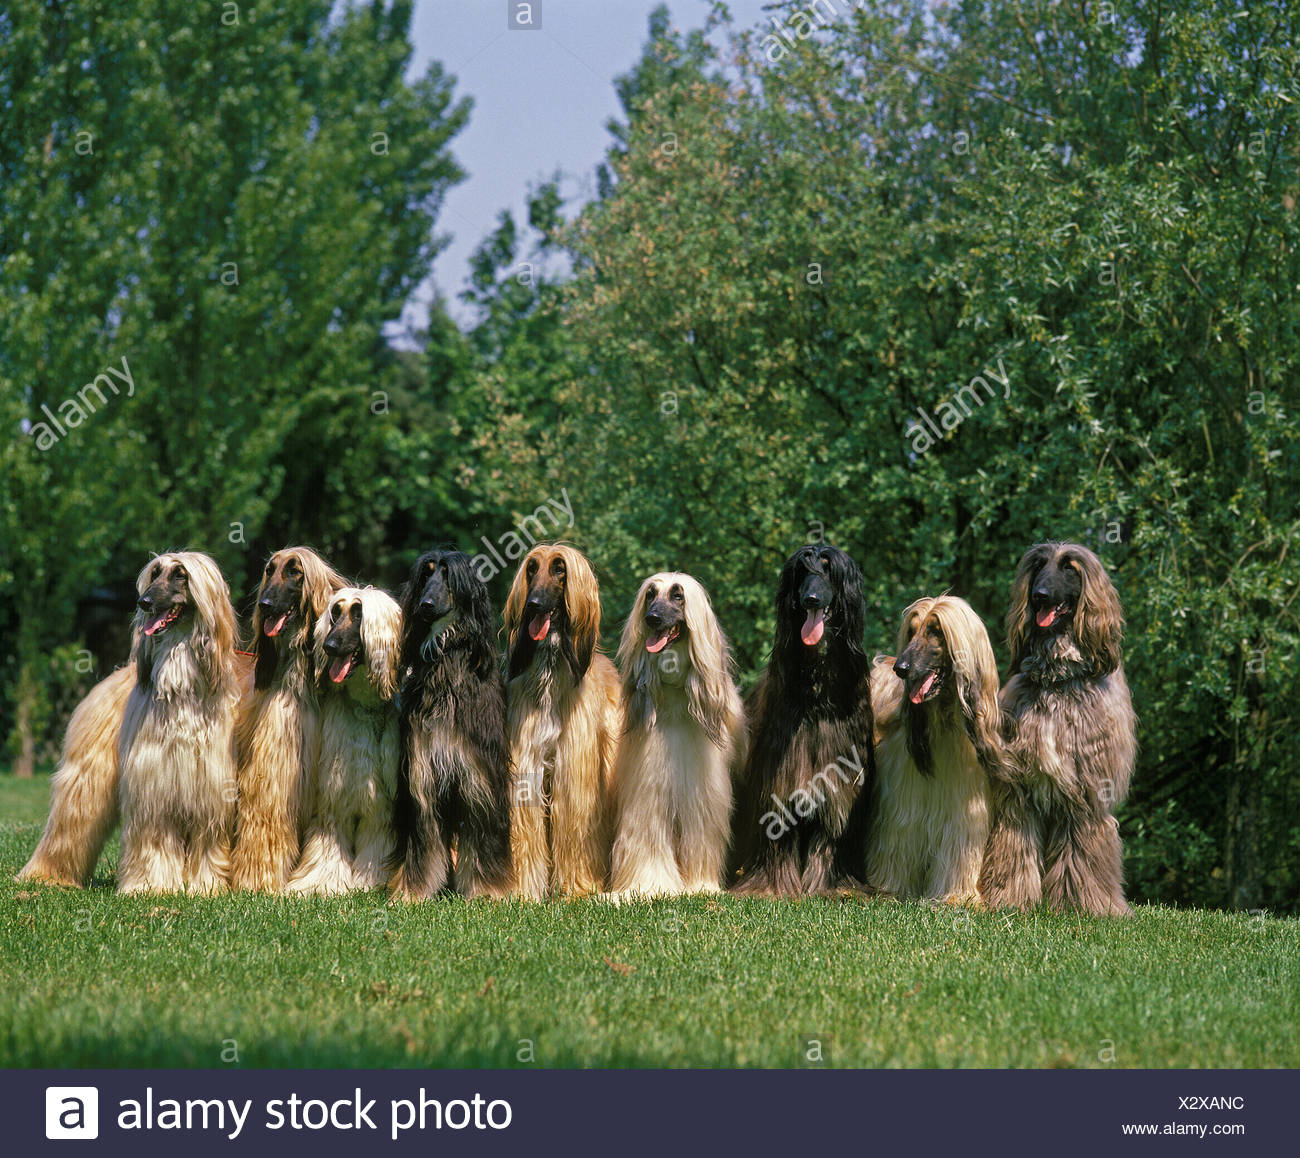 Afghan Hound, Dog on Lawn Stock Photo